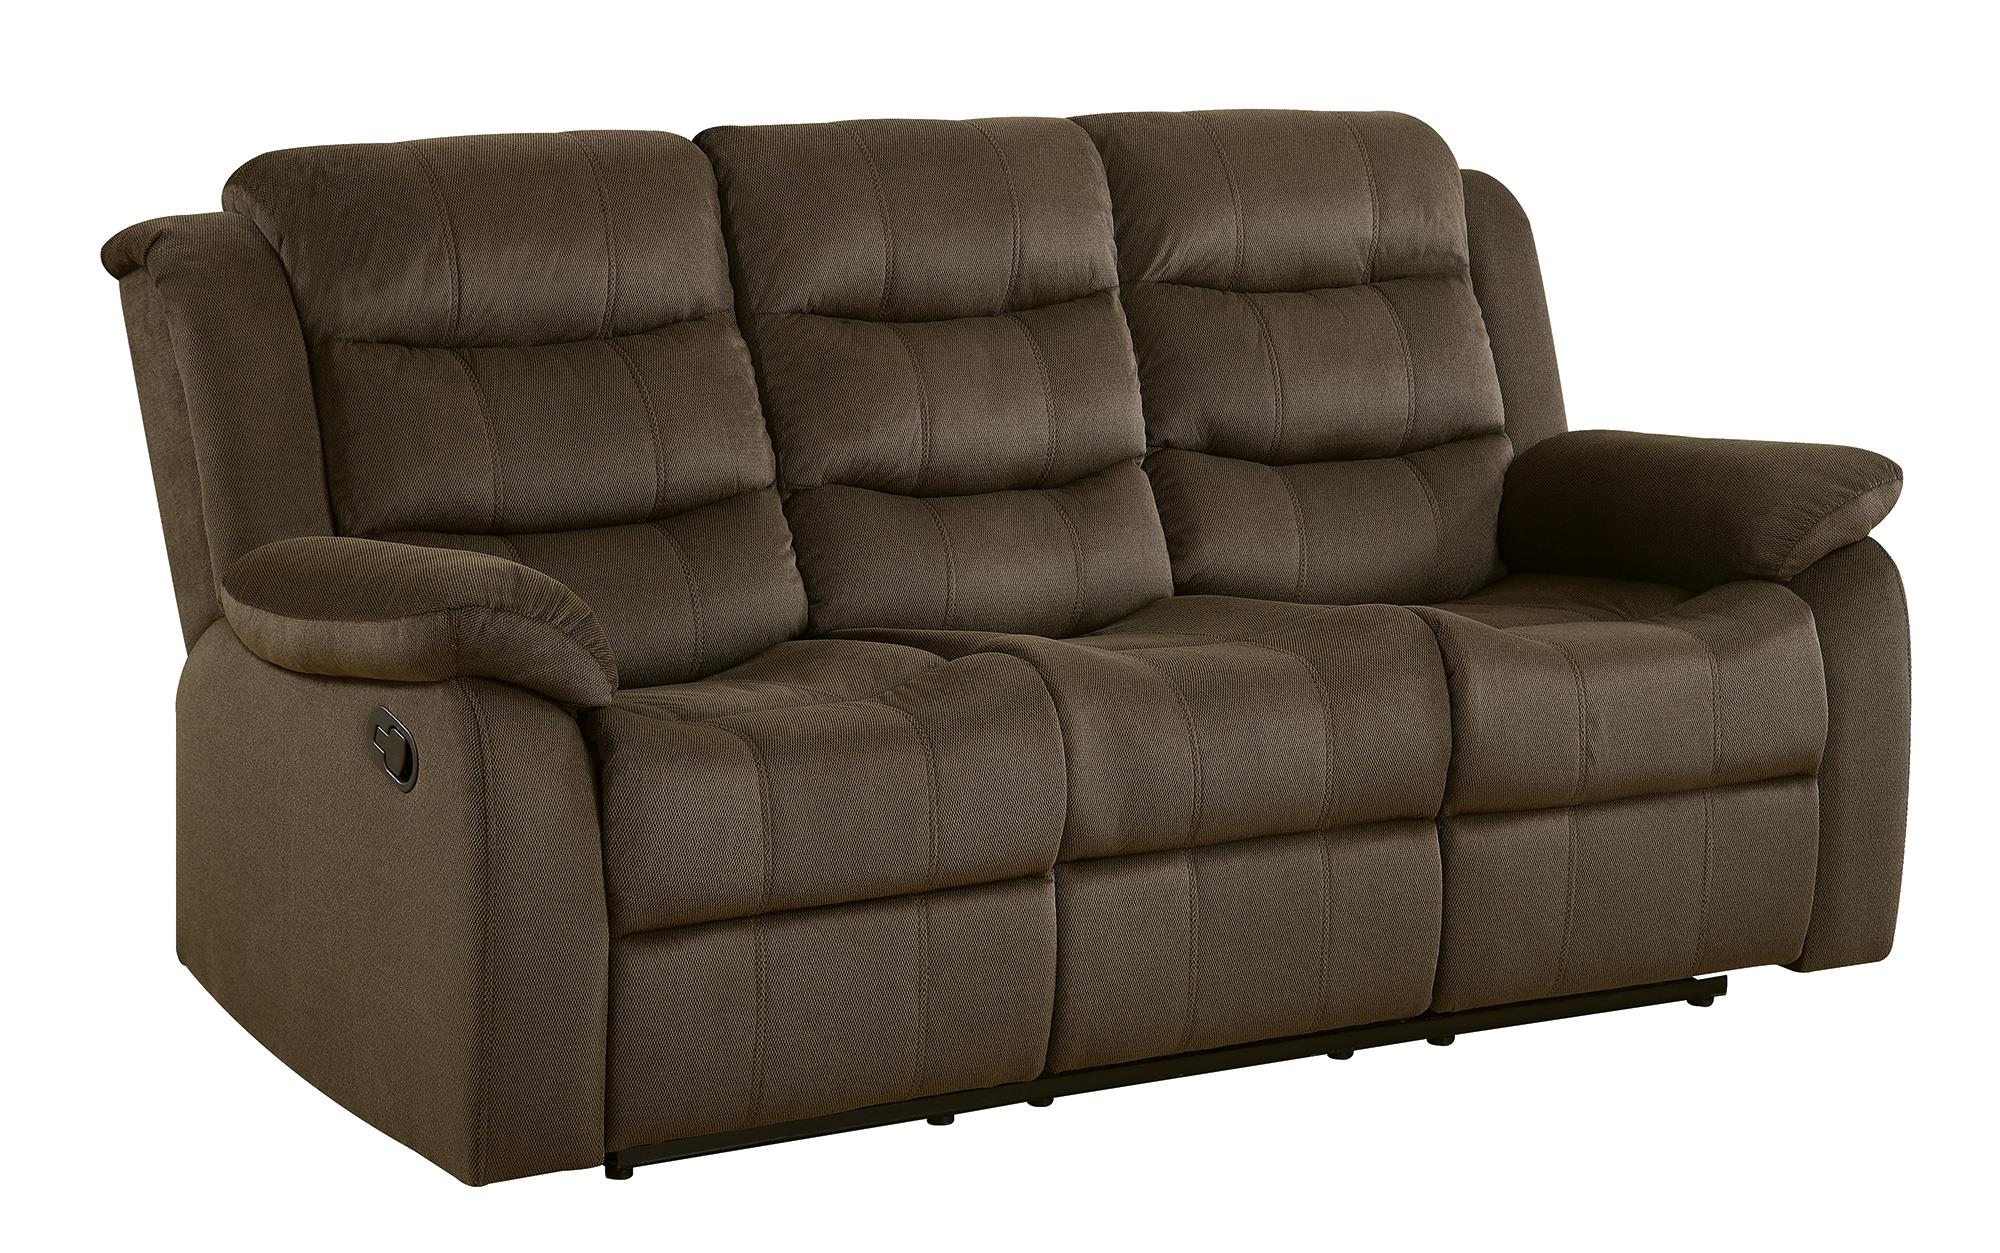 Coaster Rodman 601881 Motion Sofa Northeast Factory